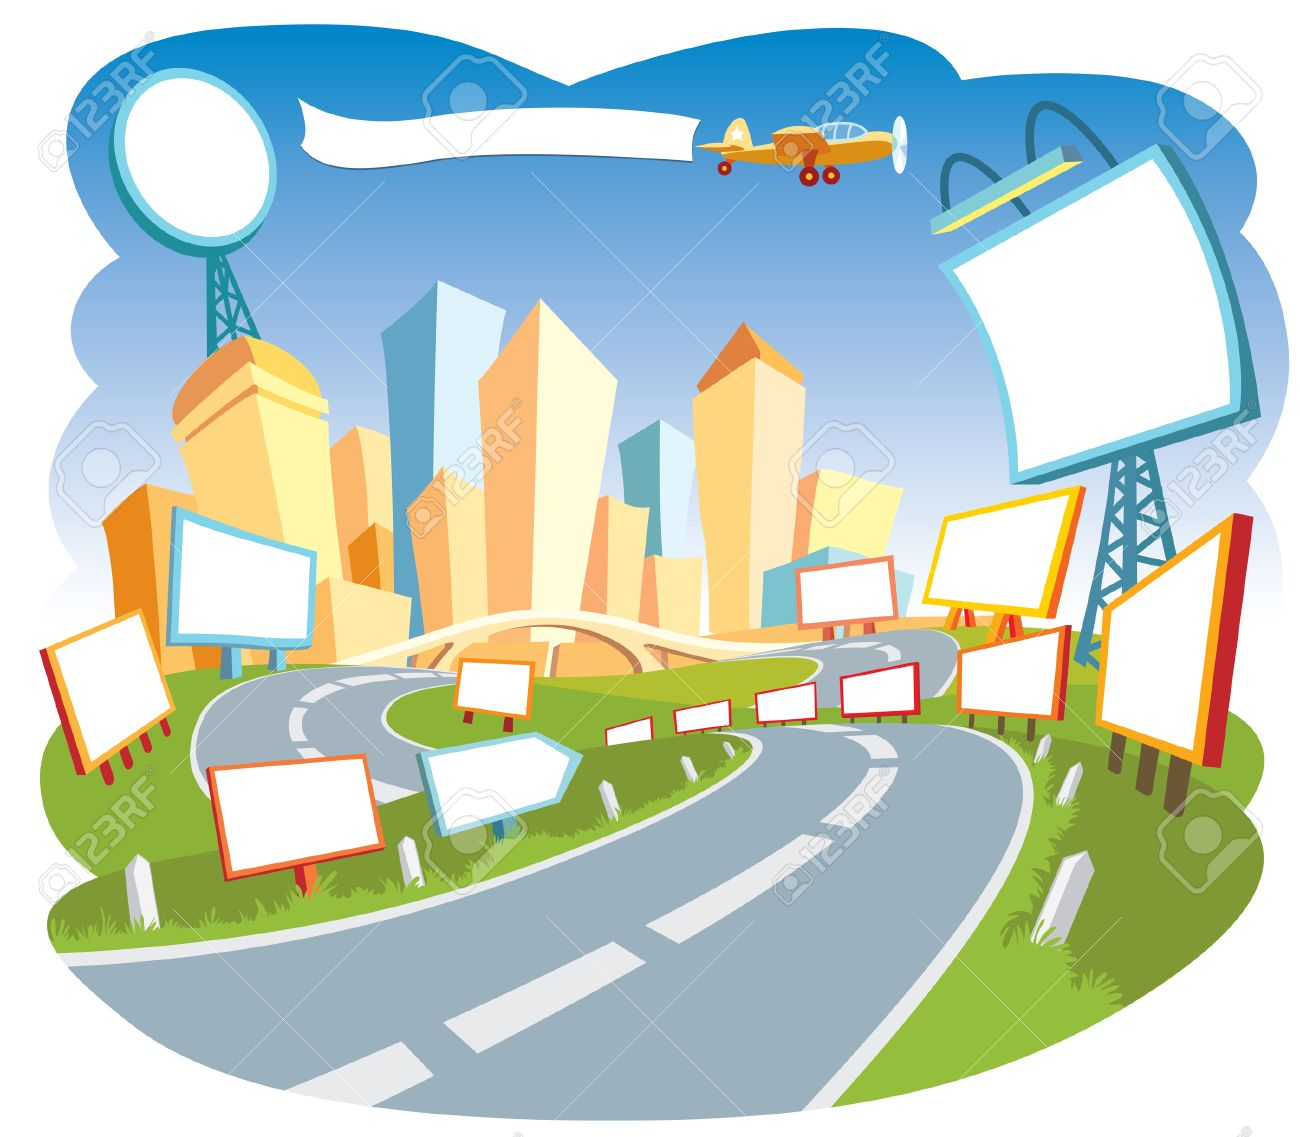 Road To A City Center 2. Royalty Free Cliparts, Vectors, And Stock.